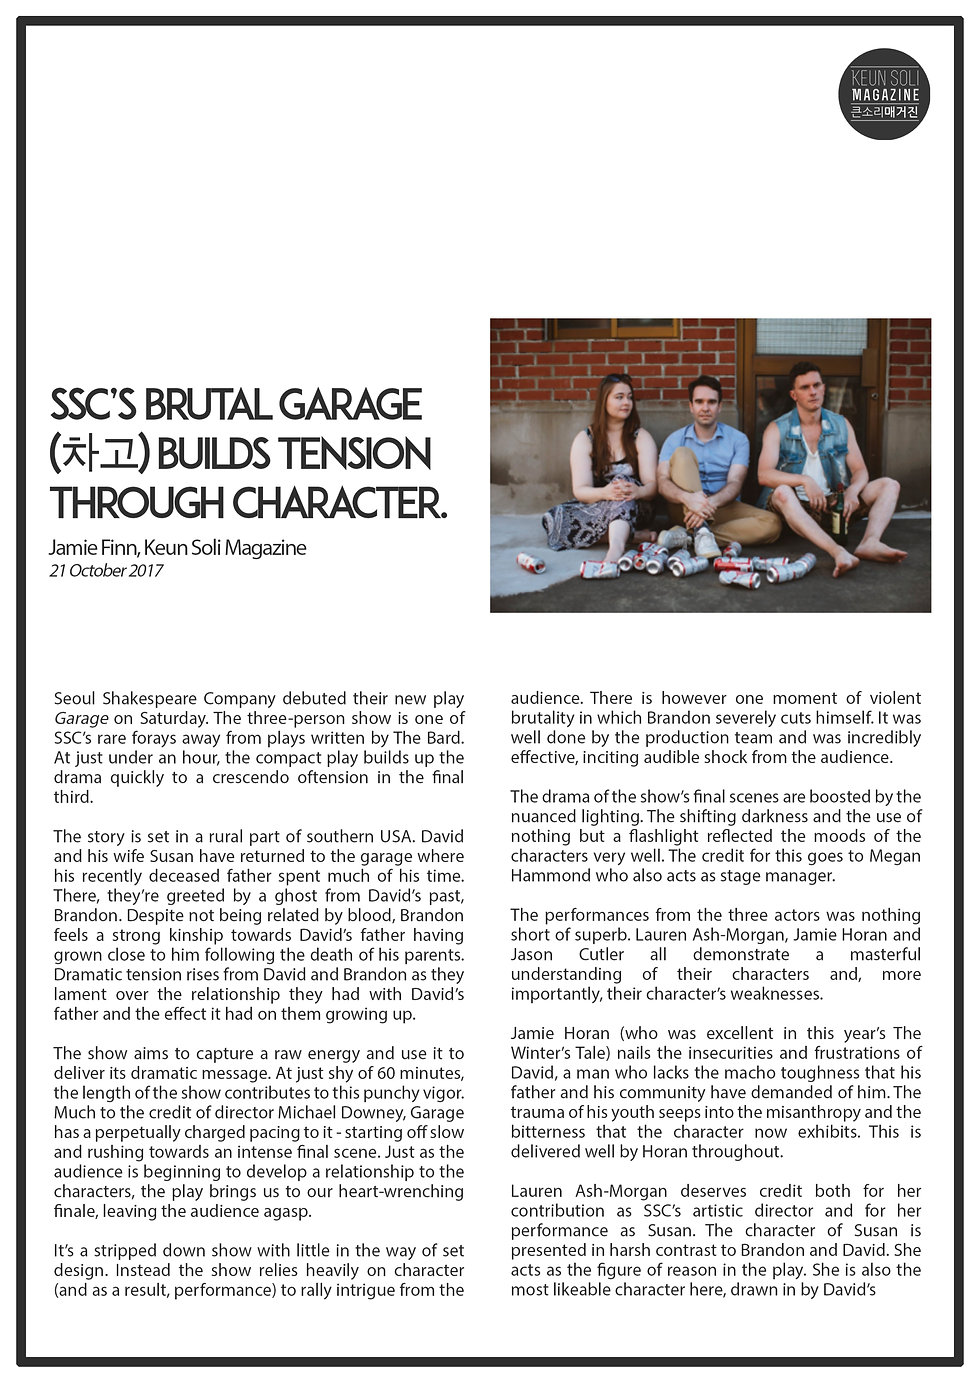 SSC's brutal Garage (차고) builds tension